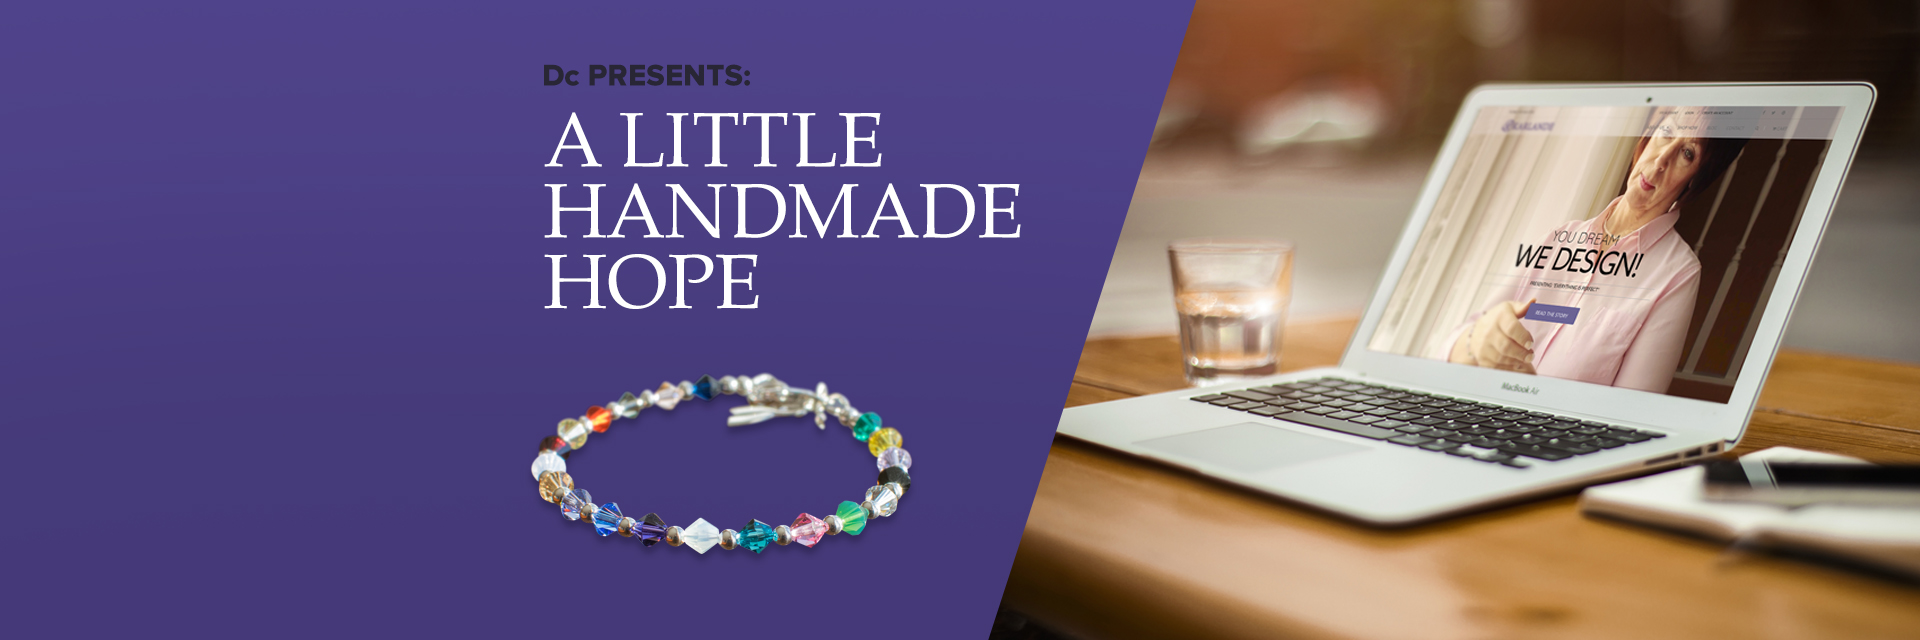 Dc Presents: A Little Handmade Hope